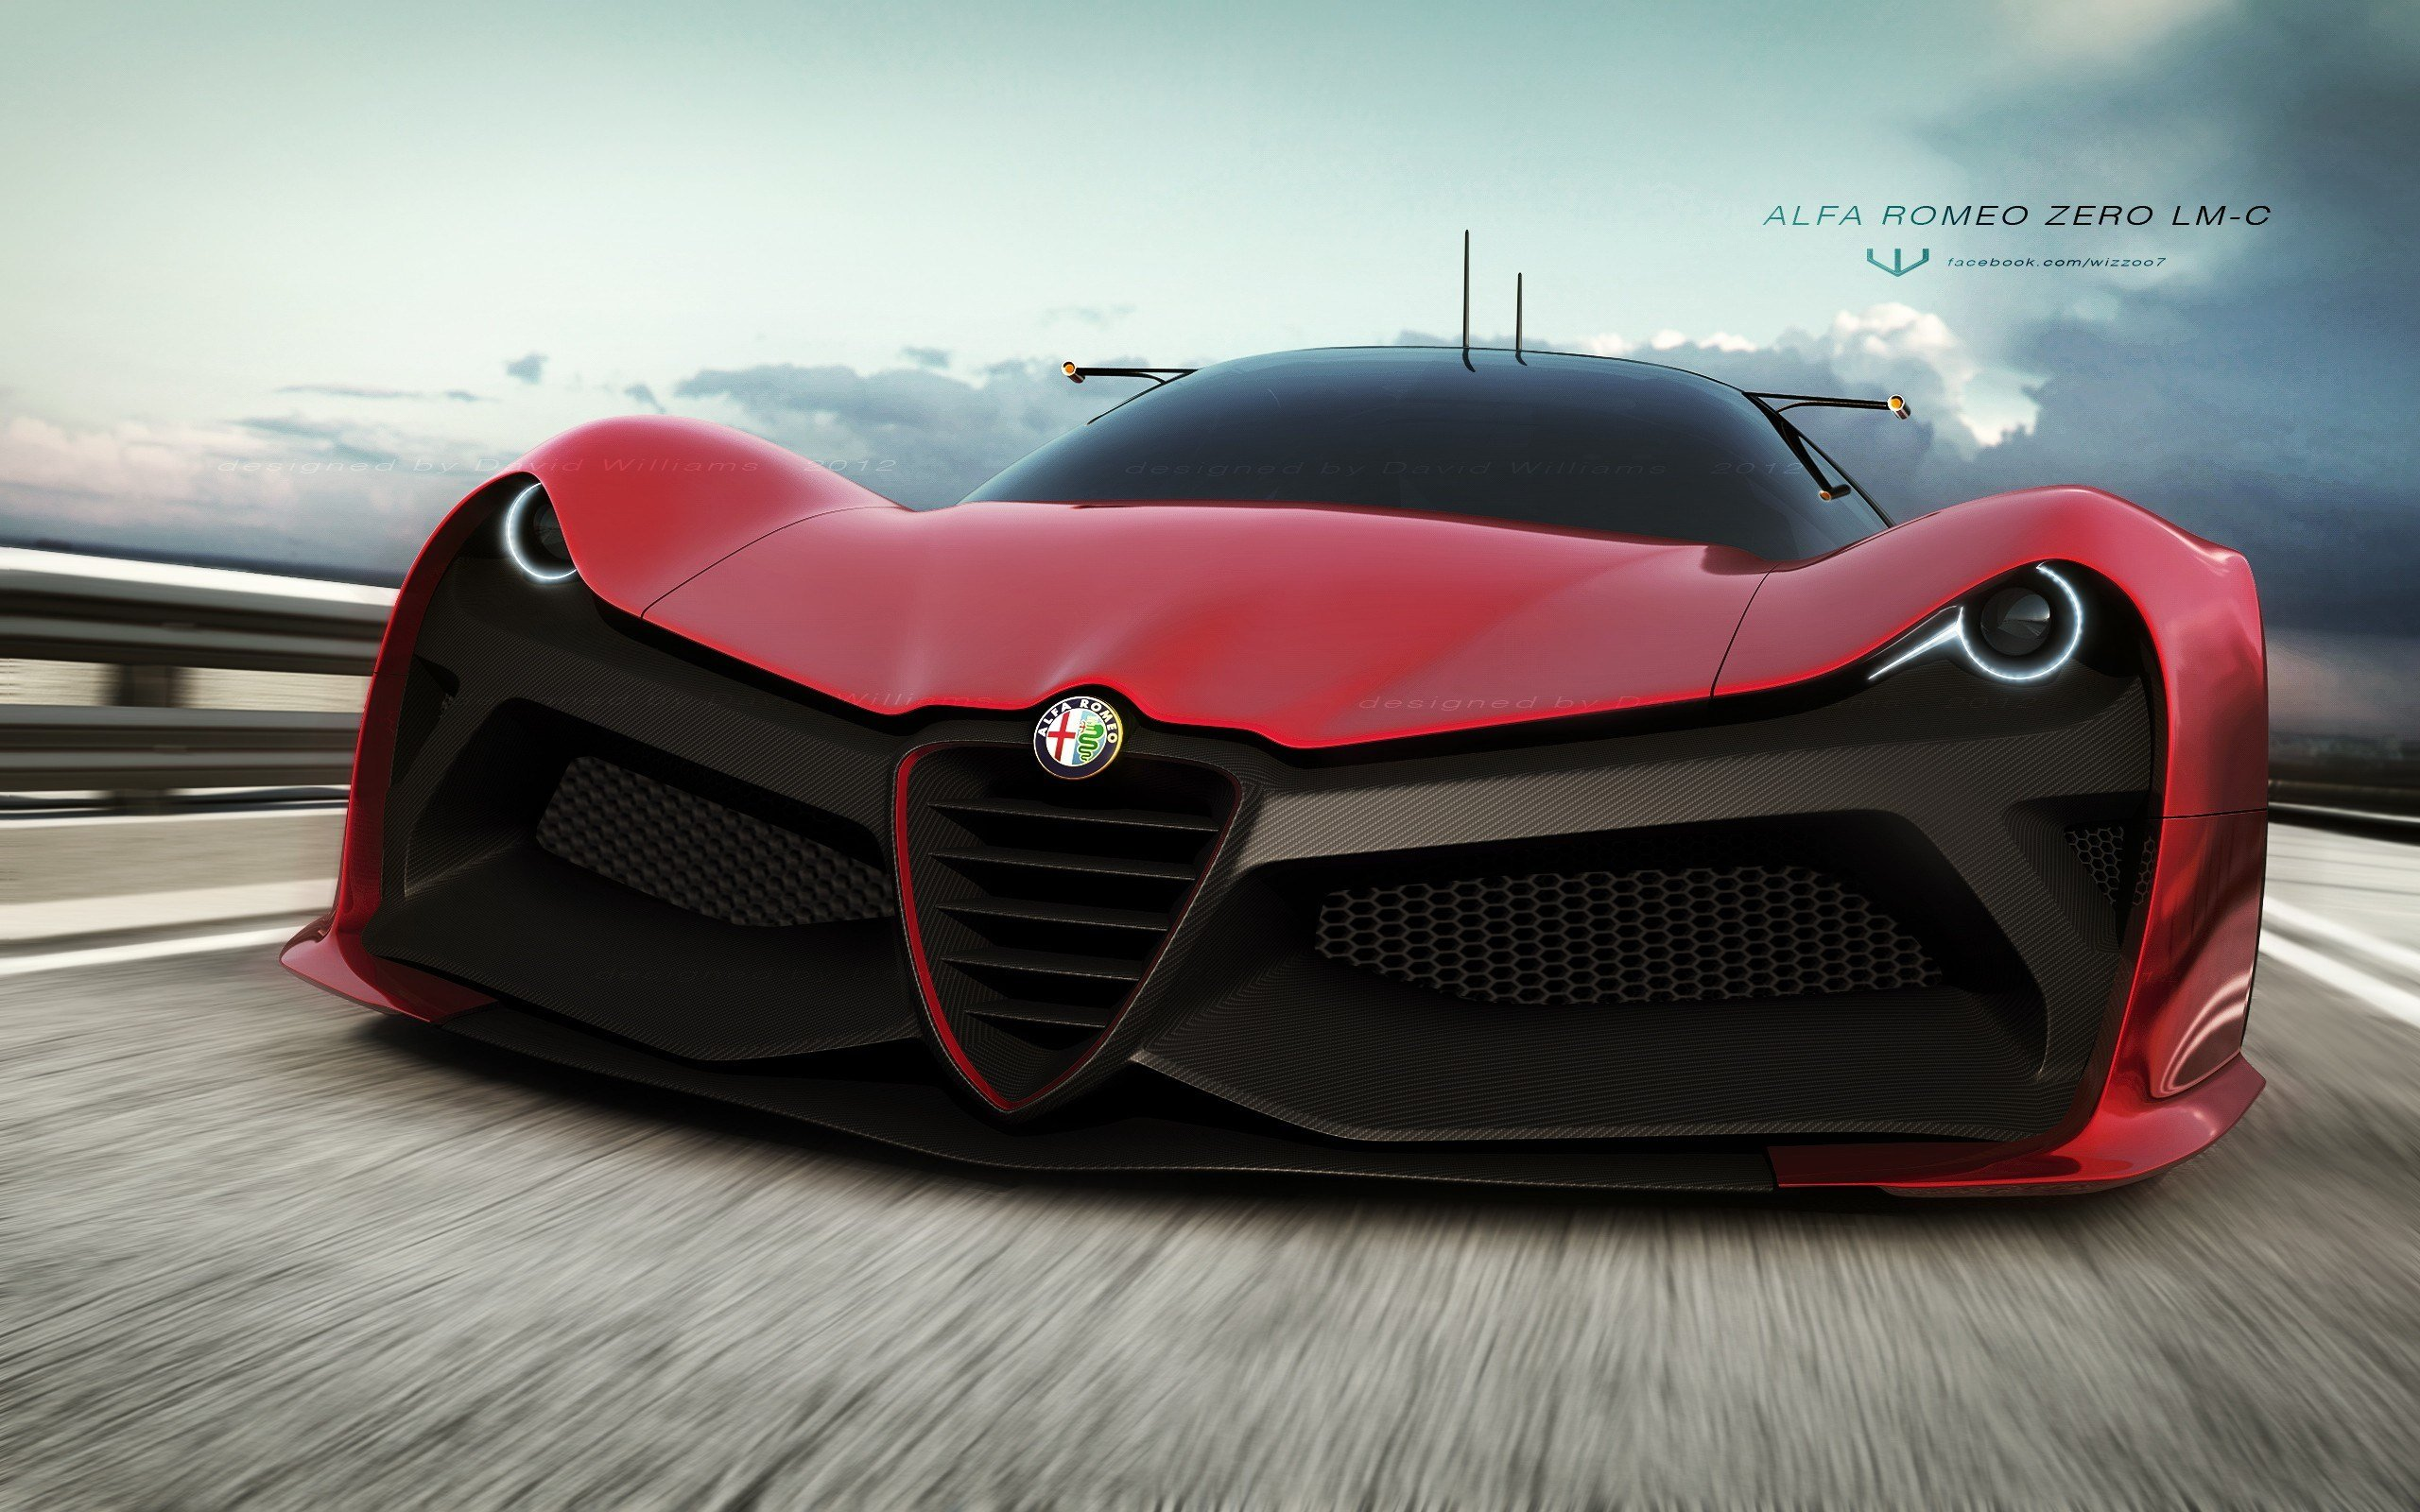 Latest 1 Alfa Romeo Zero Lm C Hd Wallpapers Background Images Free Download